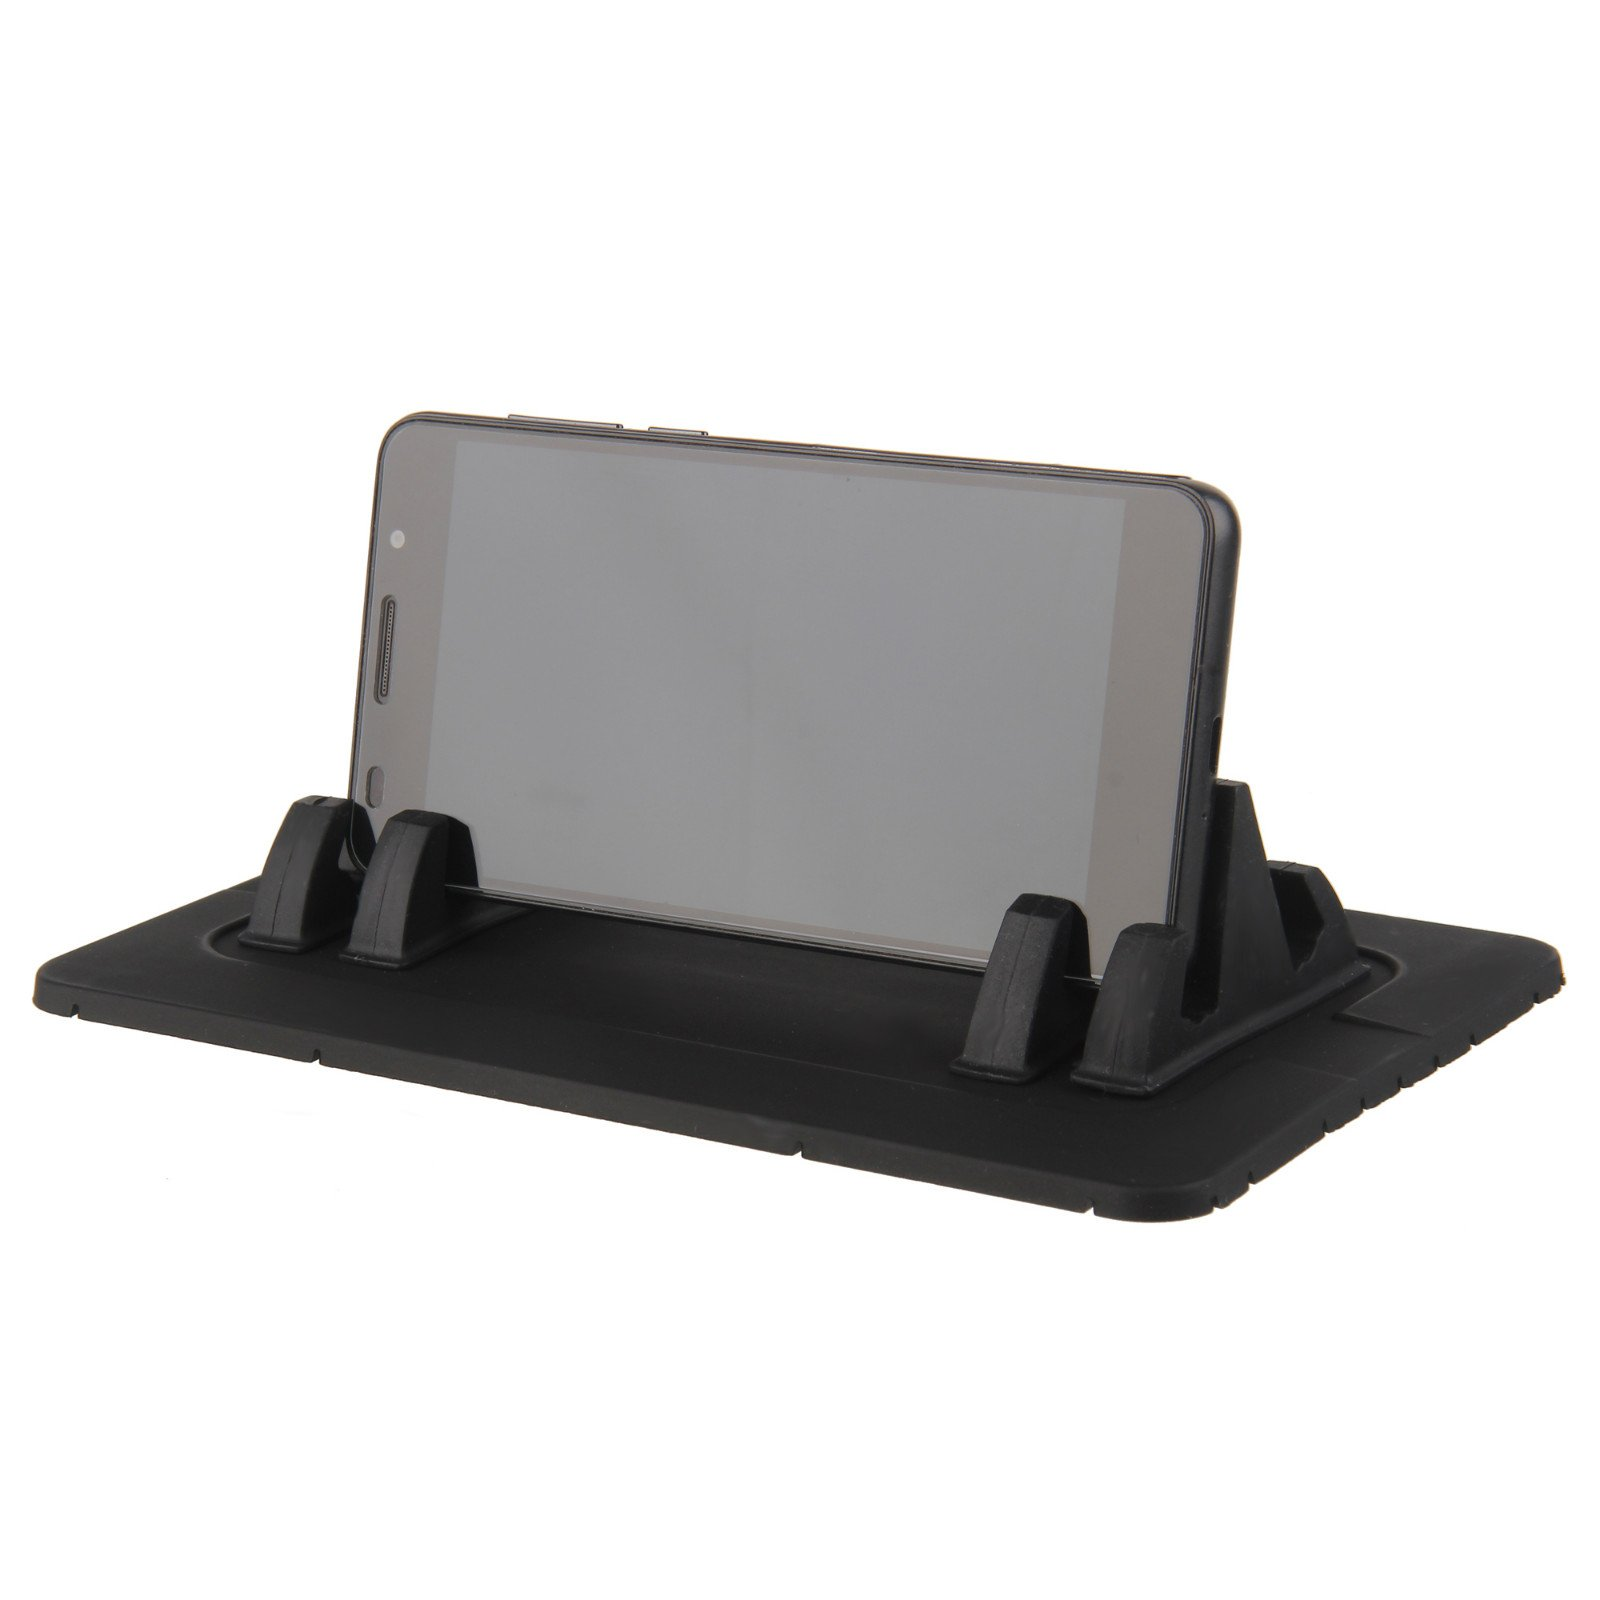 Beauty7 Universal Silicone Car Dashboard Mat Pad Adjustable Holder Mount Anti Slip Stand with 2 Pairs Phone Holder for Cellphone Mini Tablets GPS iPhone Samsung Galaxy and More